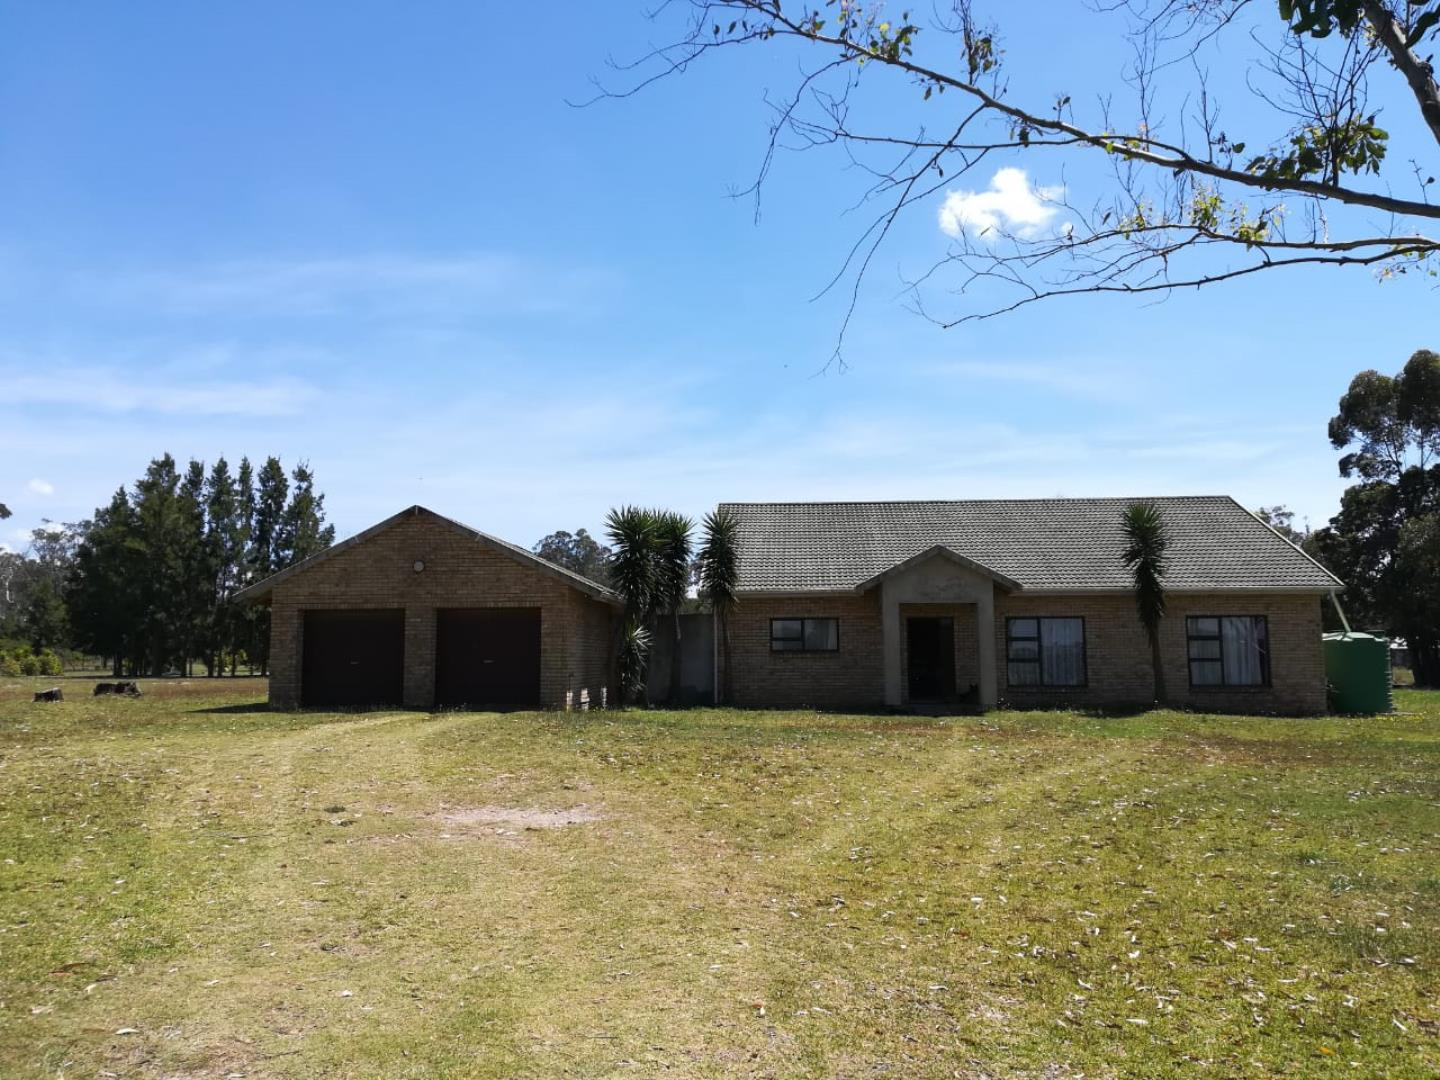 7 Bedroom House for Sale in Crockarts Hope A H, Port Elizabeth - Eastern Cape